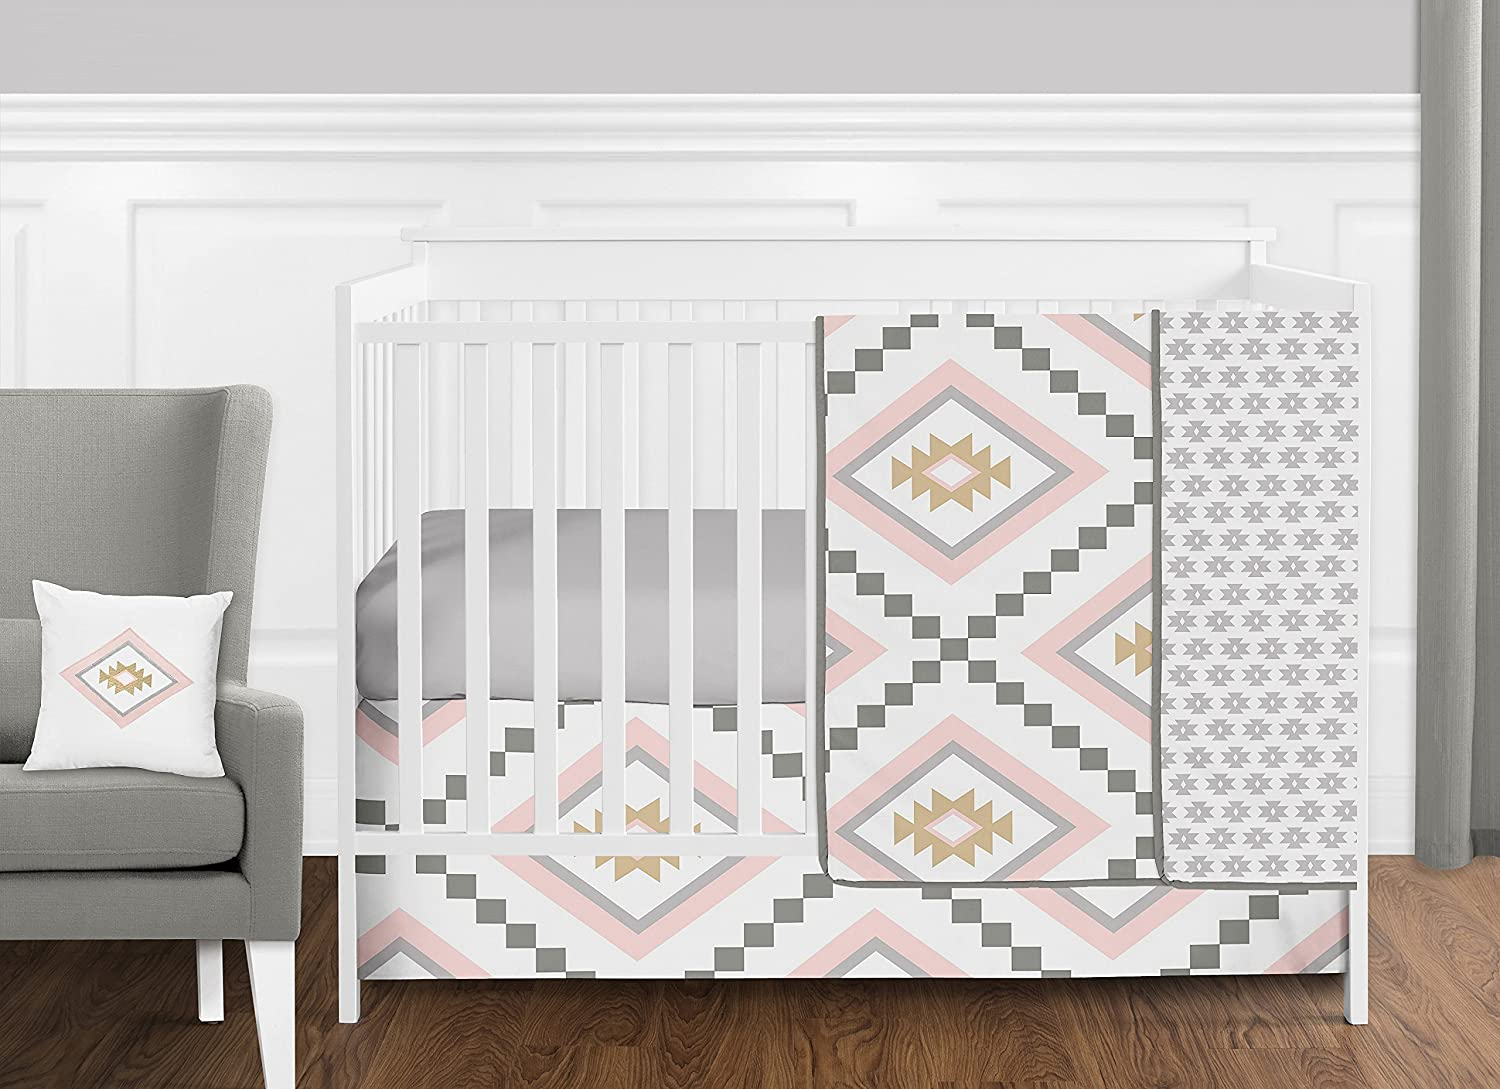 11 Pc. Blush Pink und Grey Boho und Tribal Aztec Baby Girl Crib Bedding Satz durch Sweet Jojo Designs